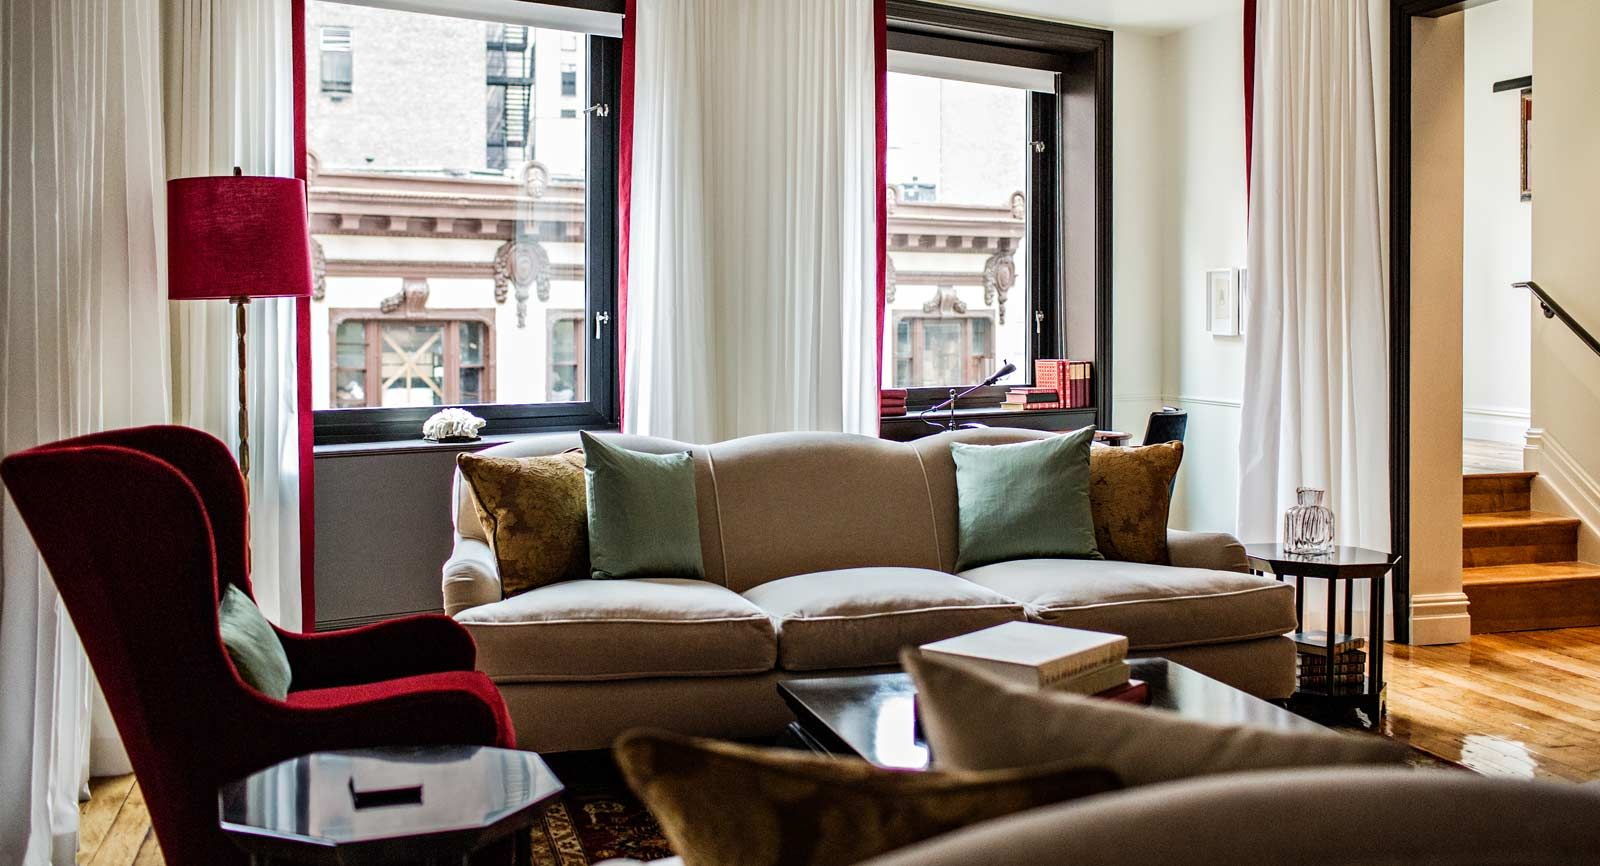 nomad hotel nyc wallpapers - photo #25